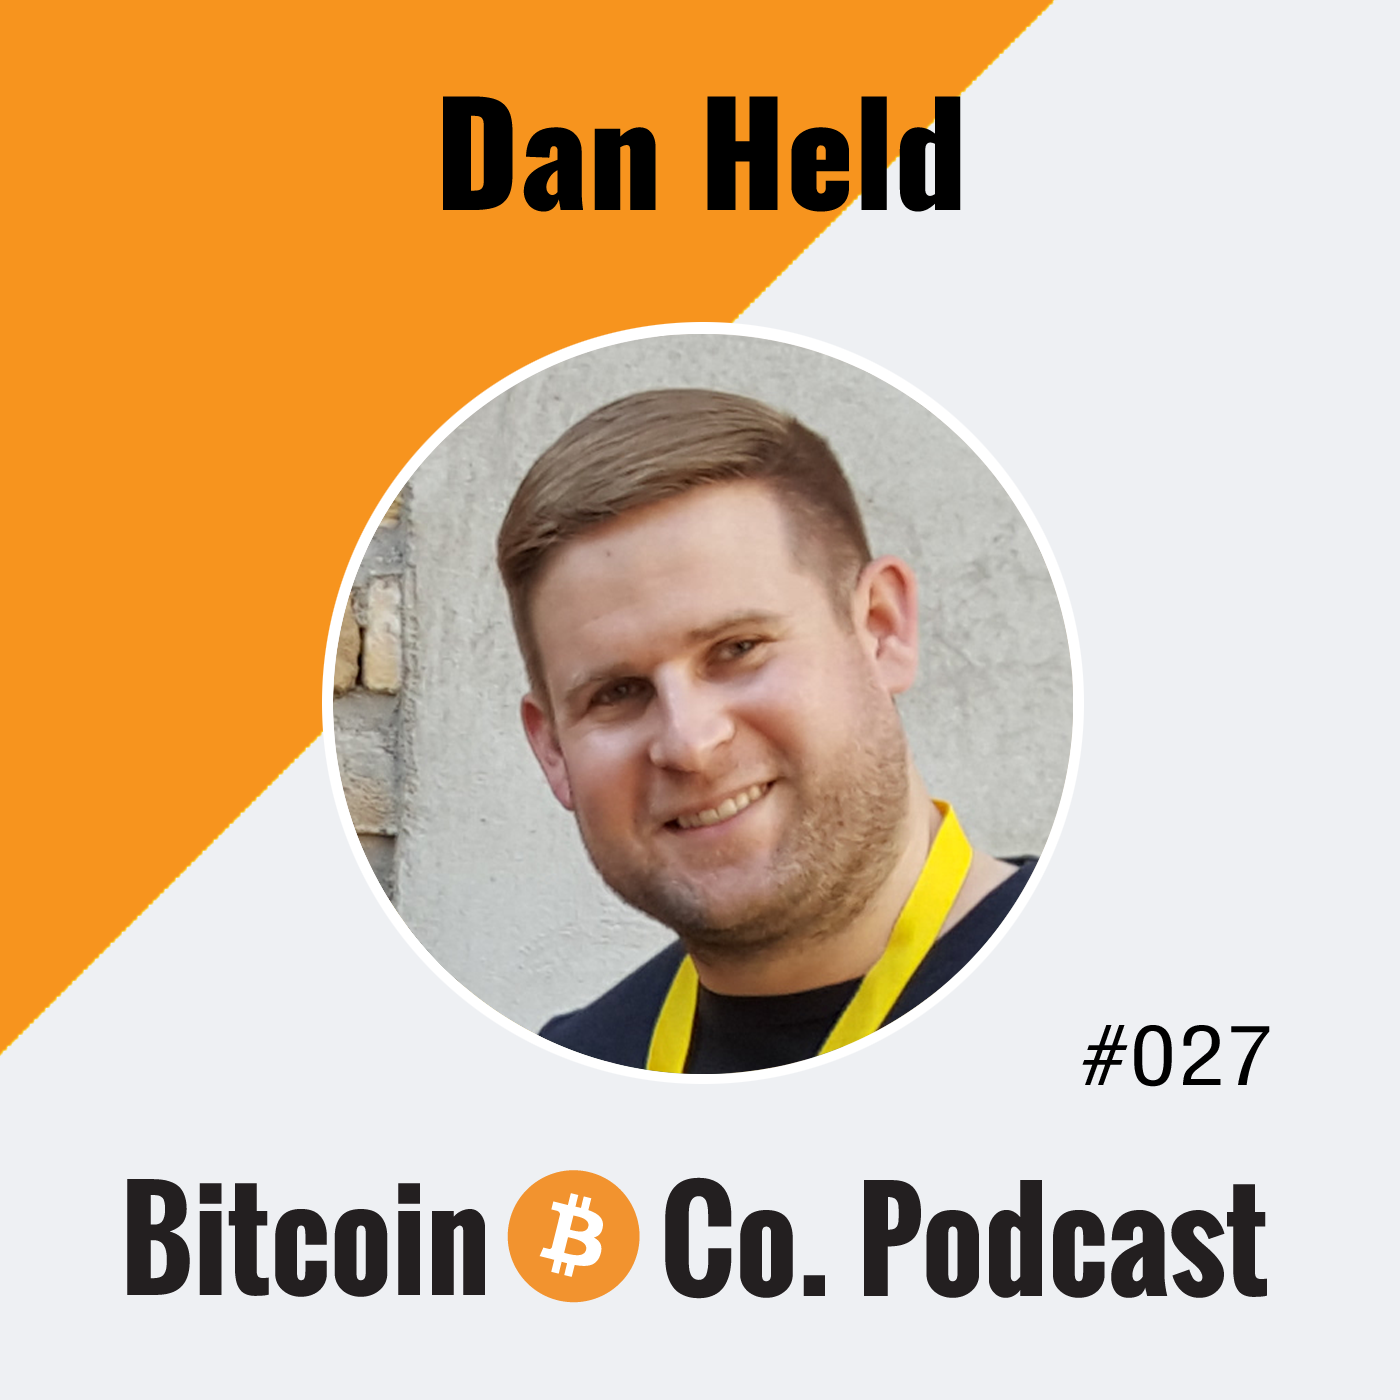 Interview with Dan Held - Audio